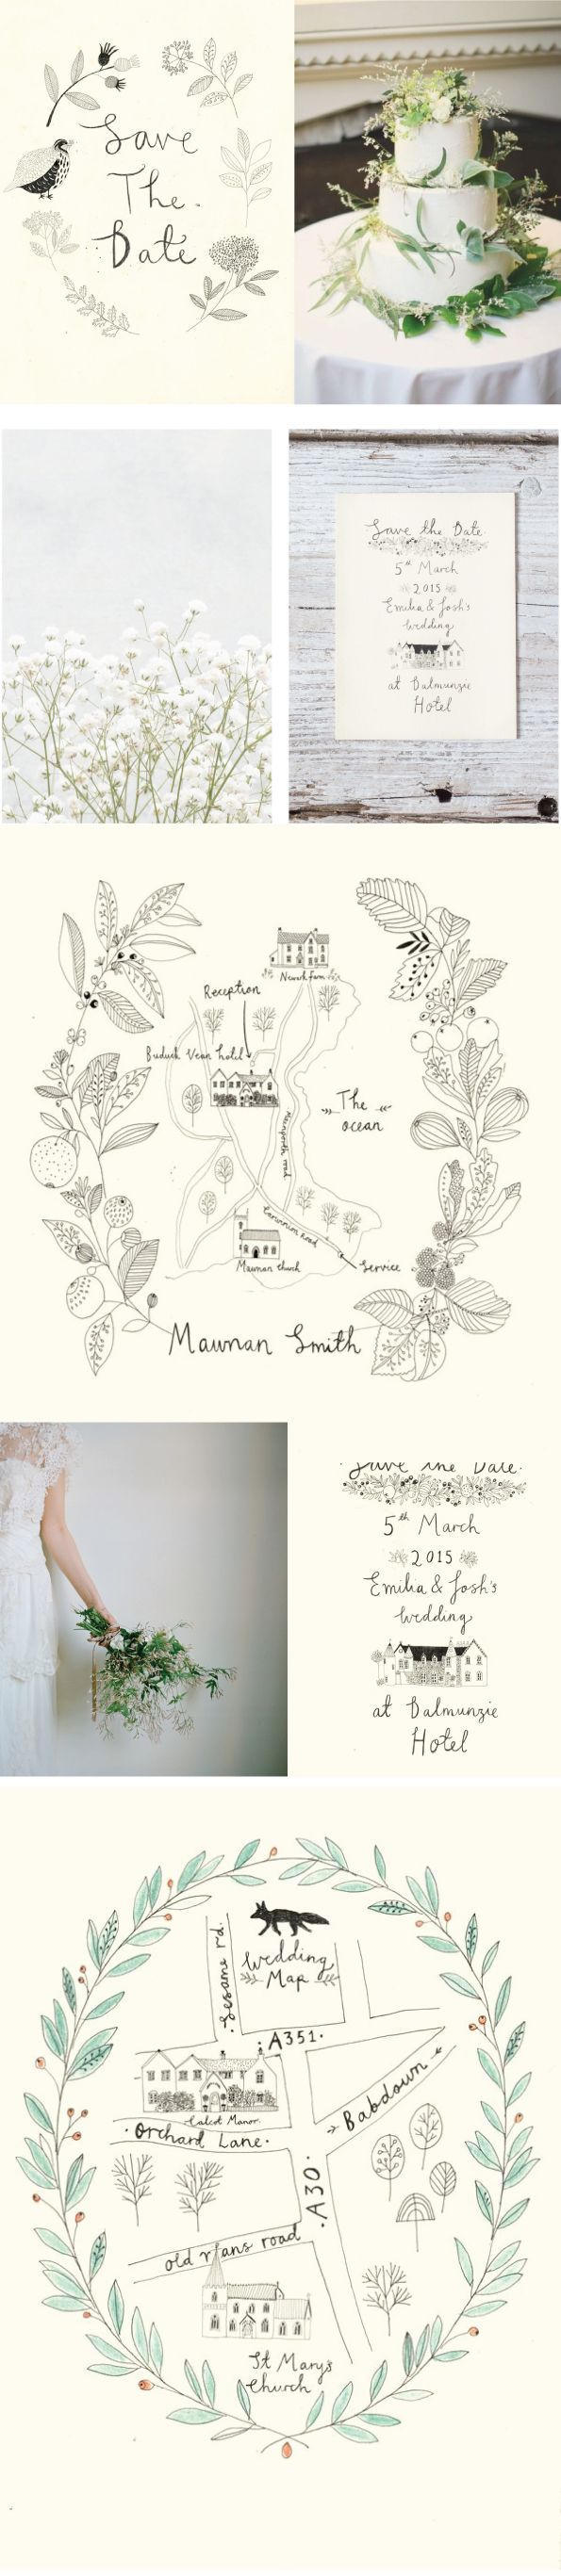 what we like save the date design sarah loves the map at the bottom maybe an idea for the invitation whimsical vintage wedding feel